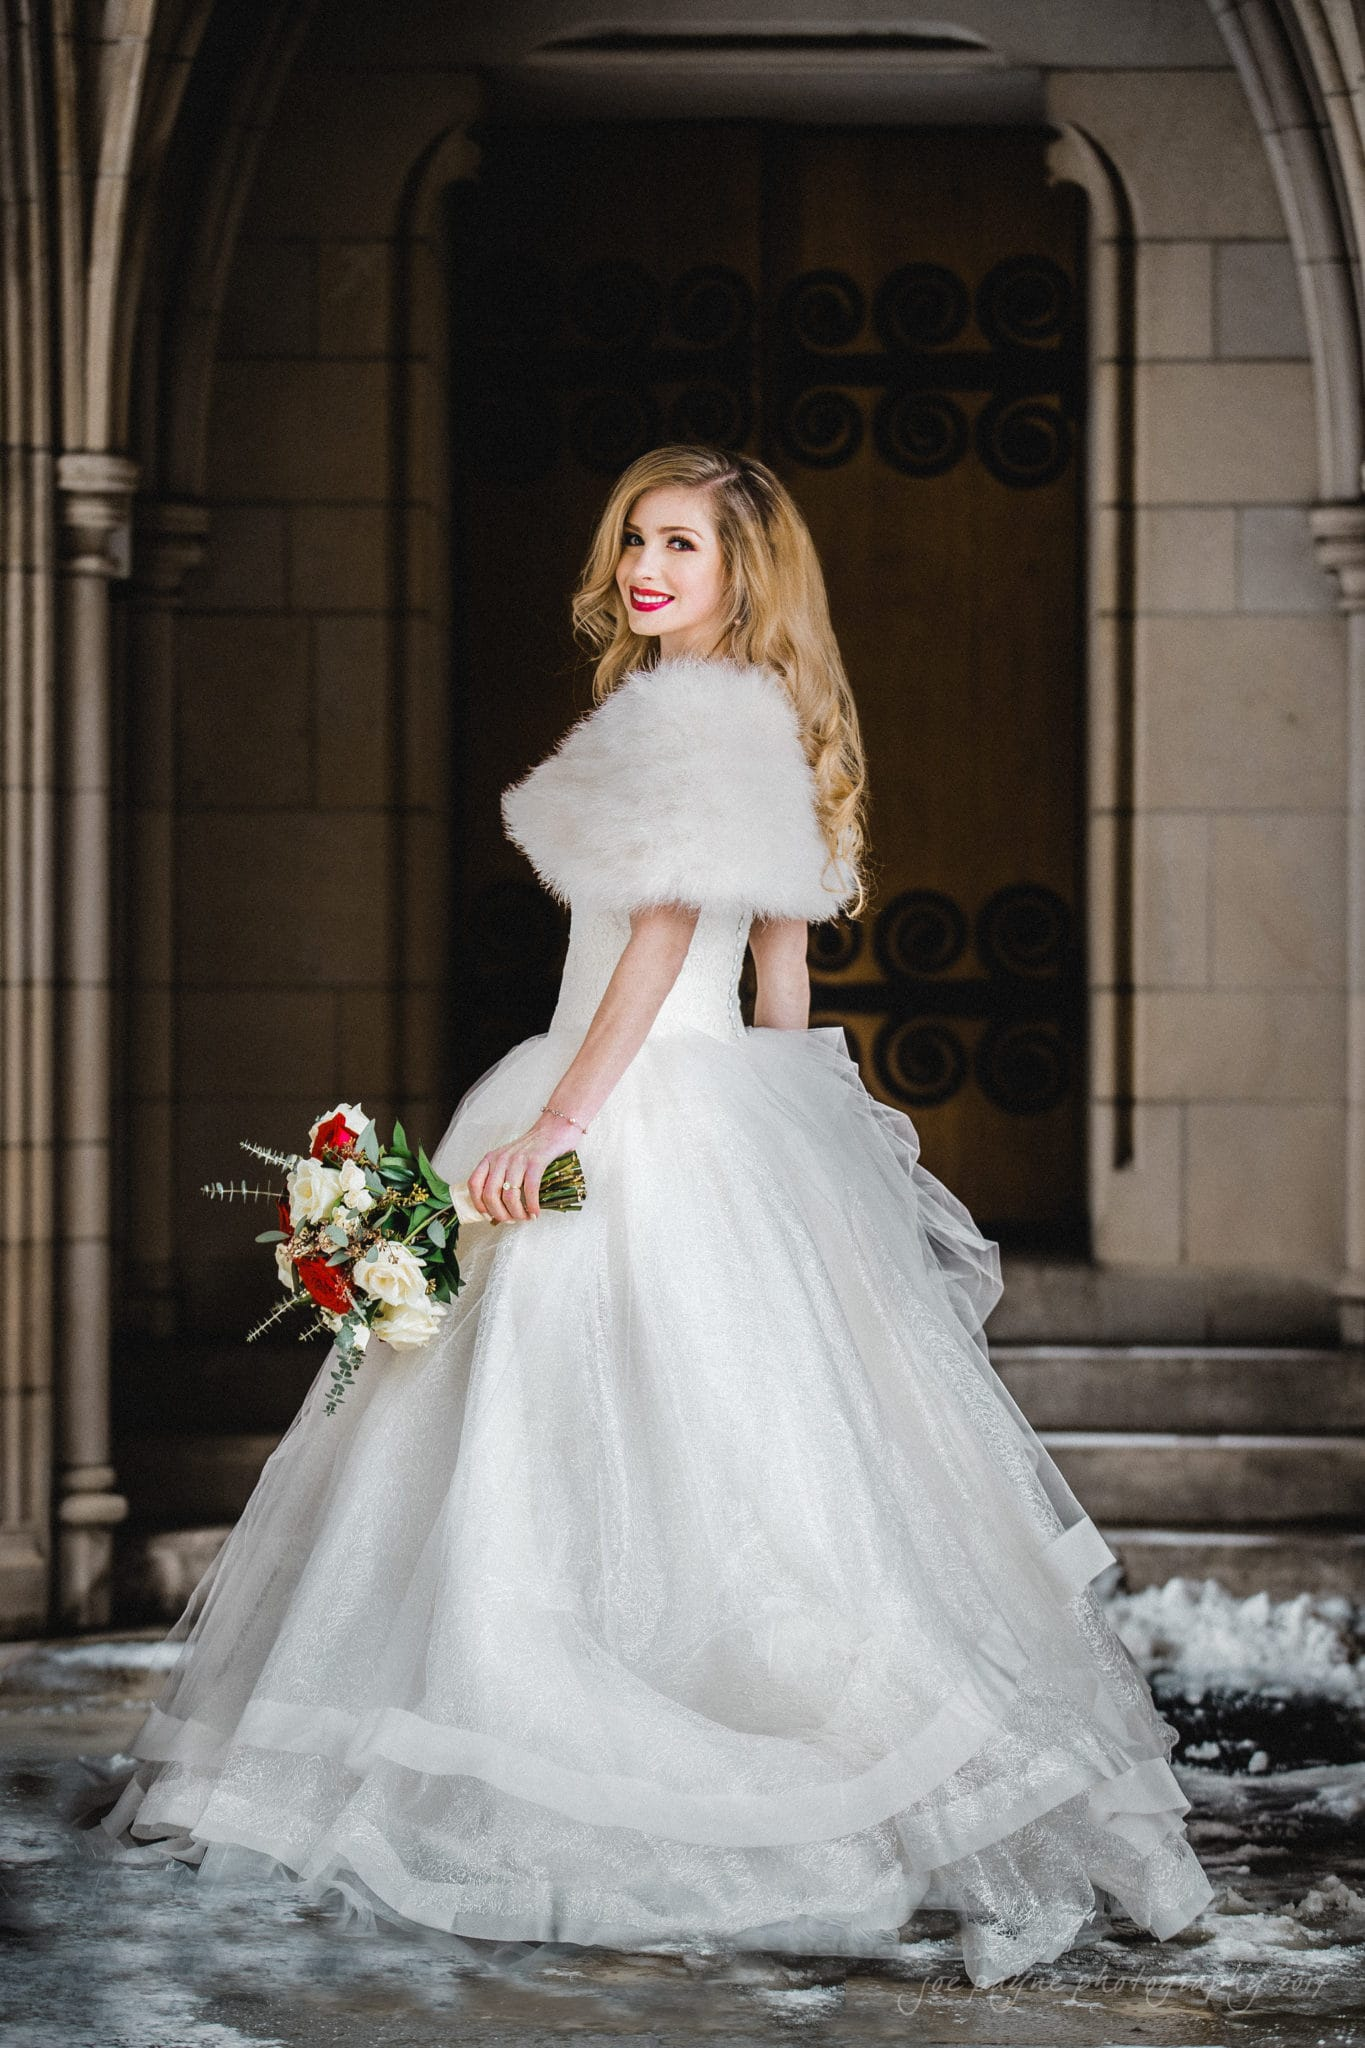 Snowy Duke Chapel Bridal Photo